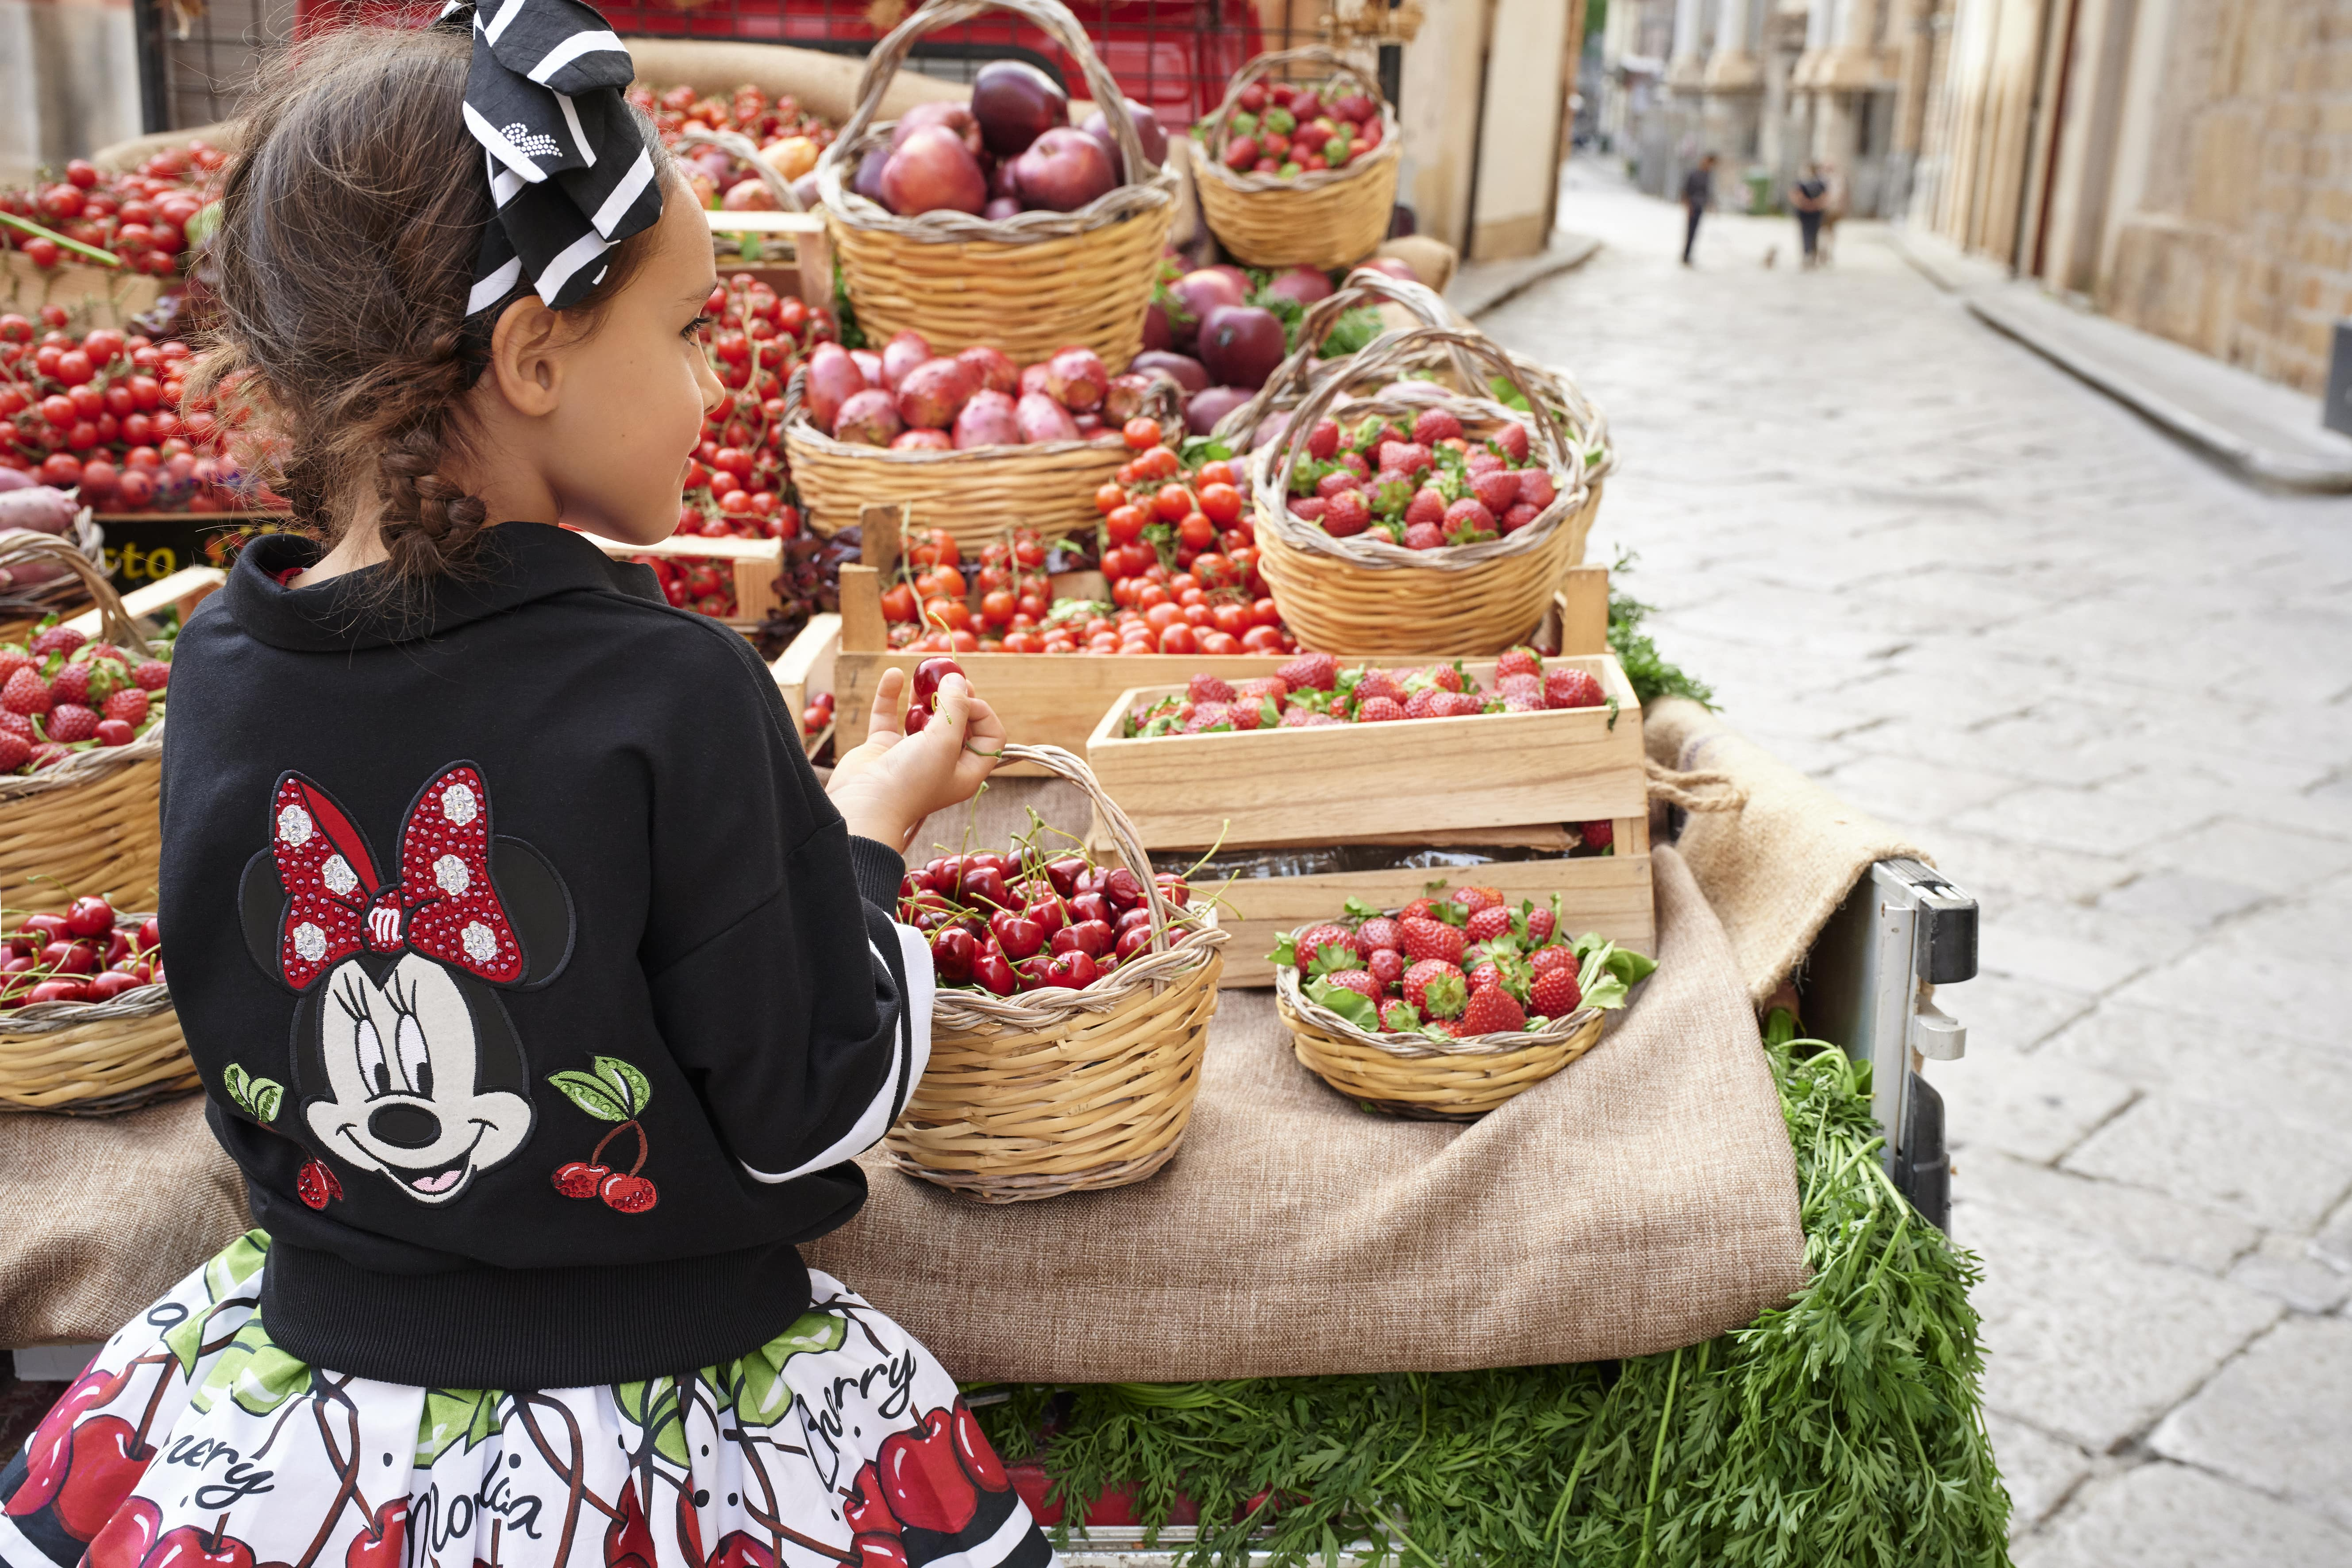 MONNALISA_Ape_Minnie_e_Cherries-08_7439.jpg